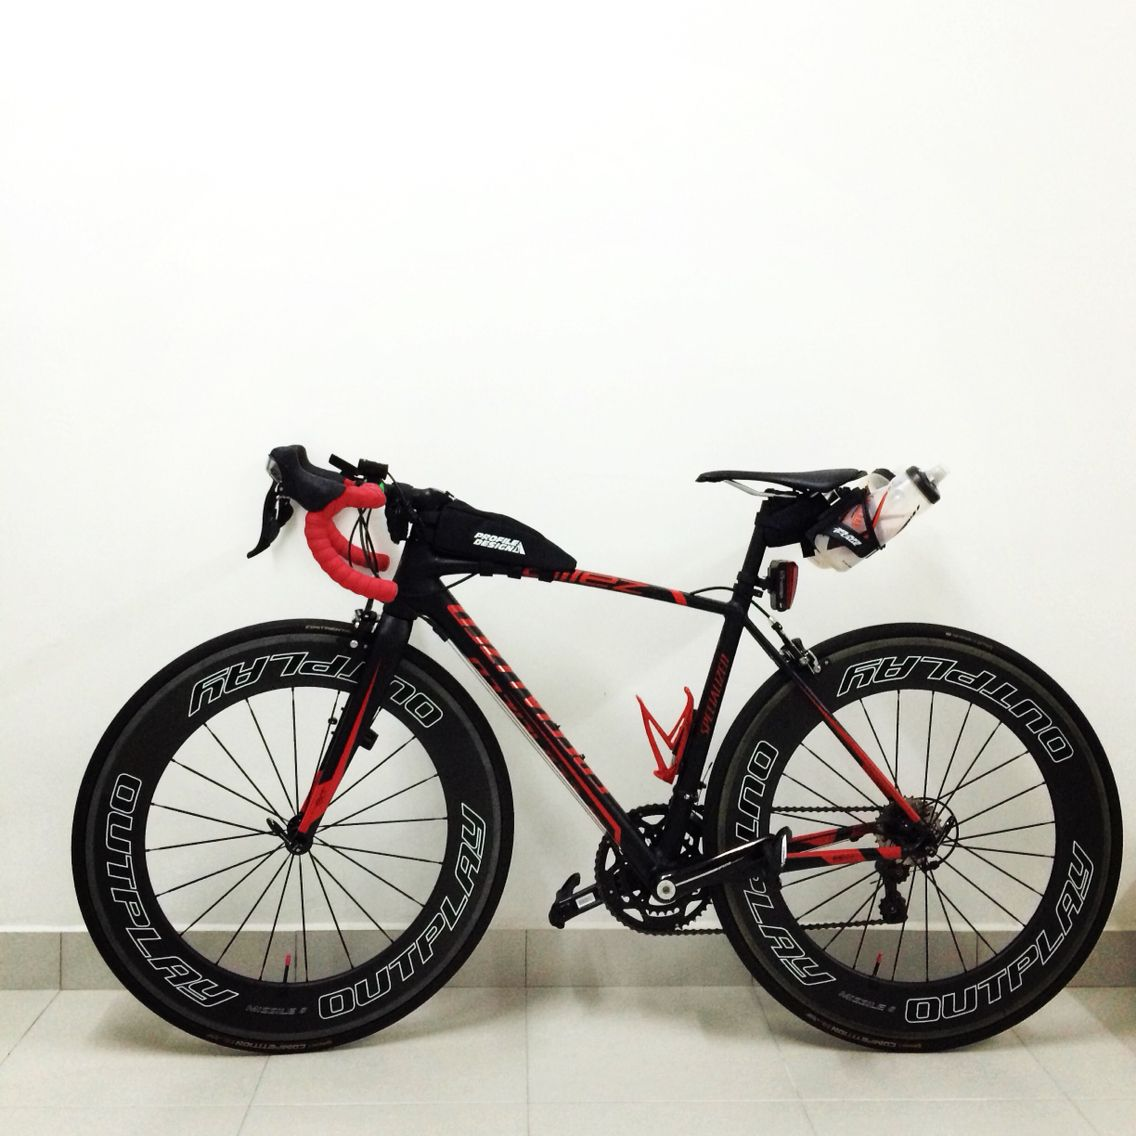 My Specialized Allez Race model 2013 with Outplay Missile 8